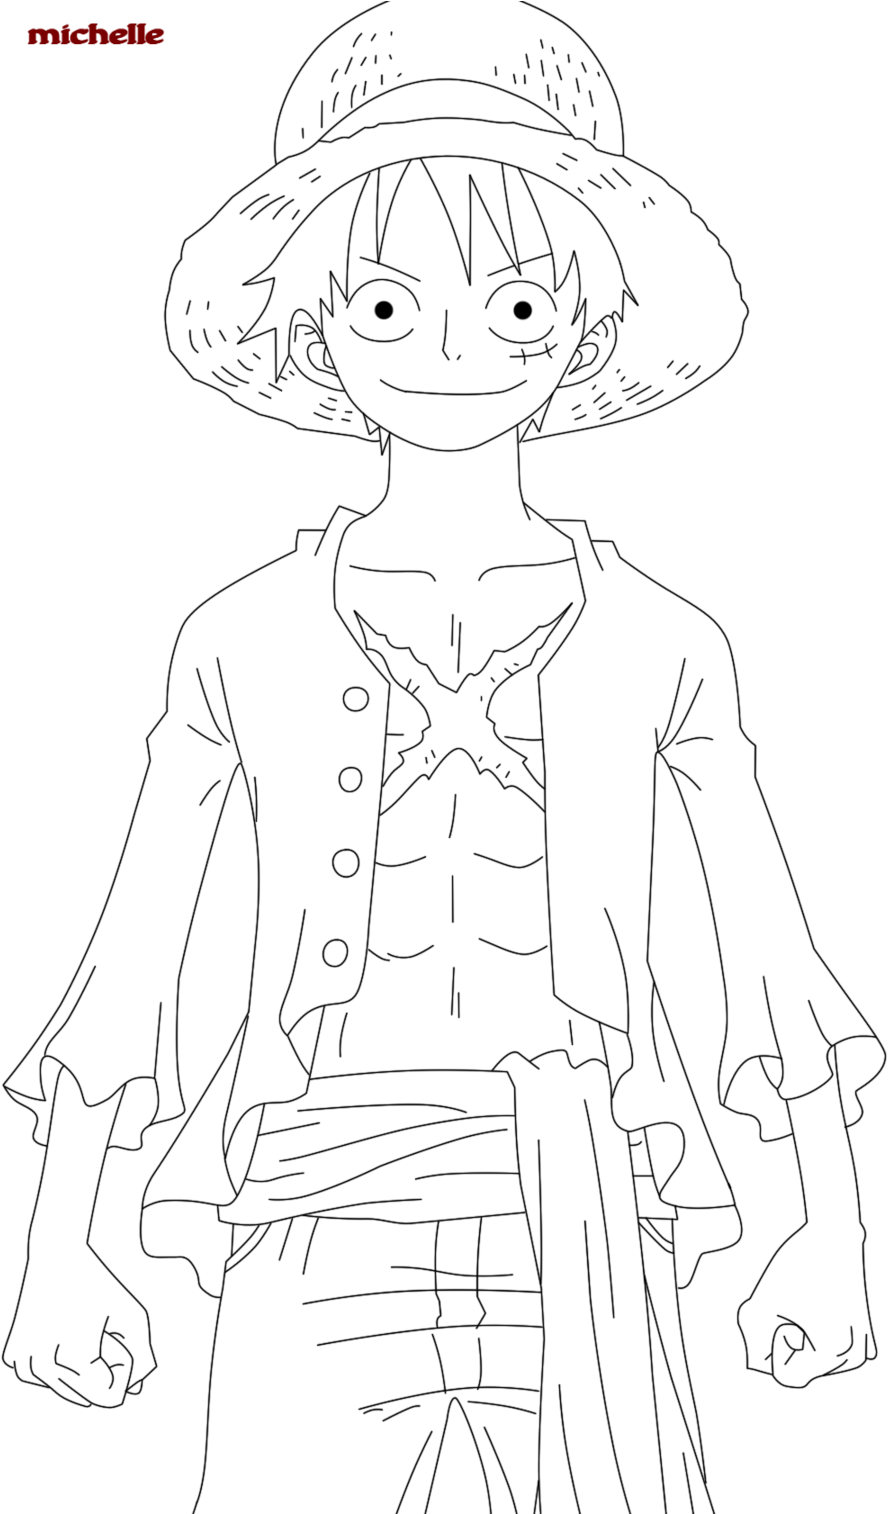 One Piece Coloring Pages : piece, coloring, pages, Download, Modest, Piece, Coloring, Pages, Monkey, Luffy, Pinterest, Image, PNGkit